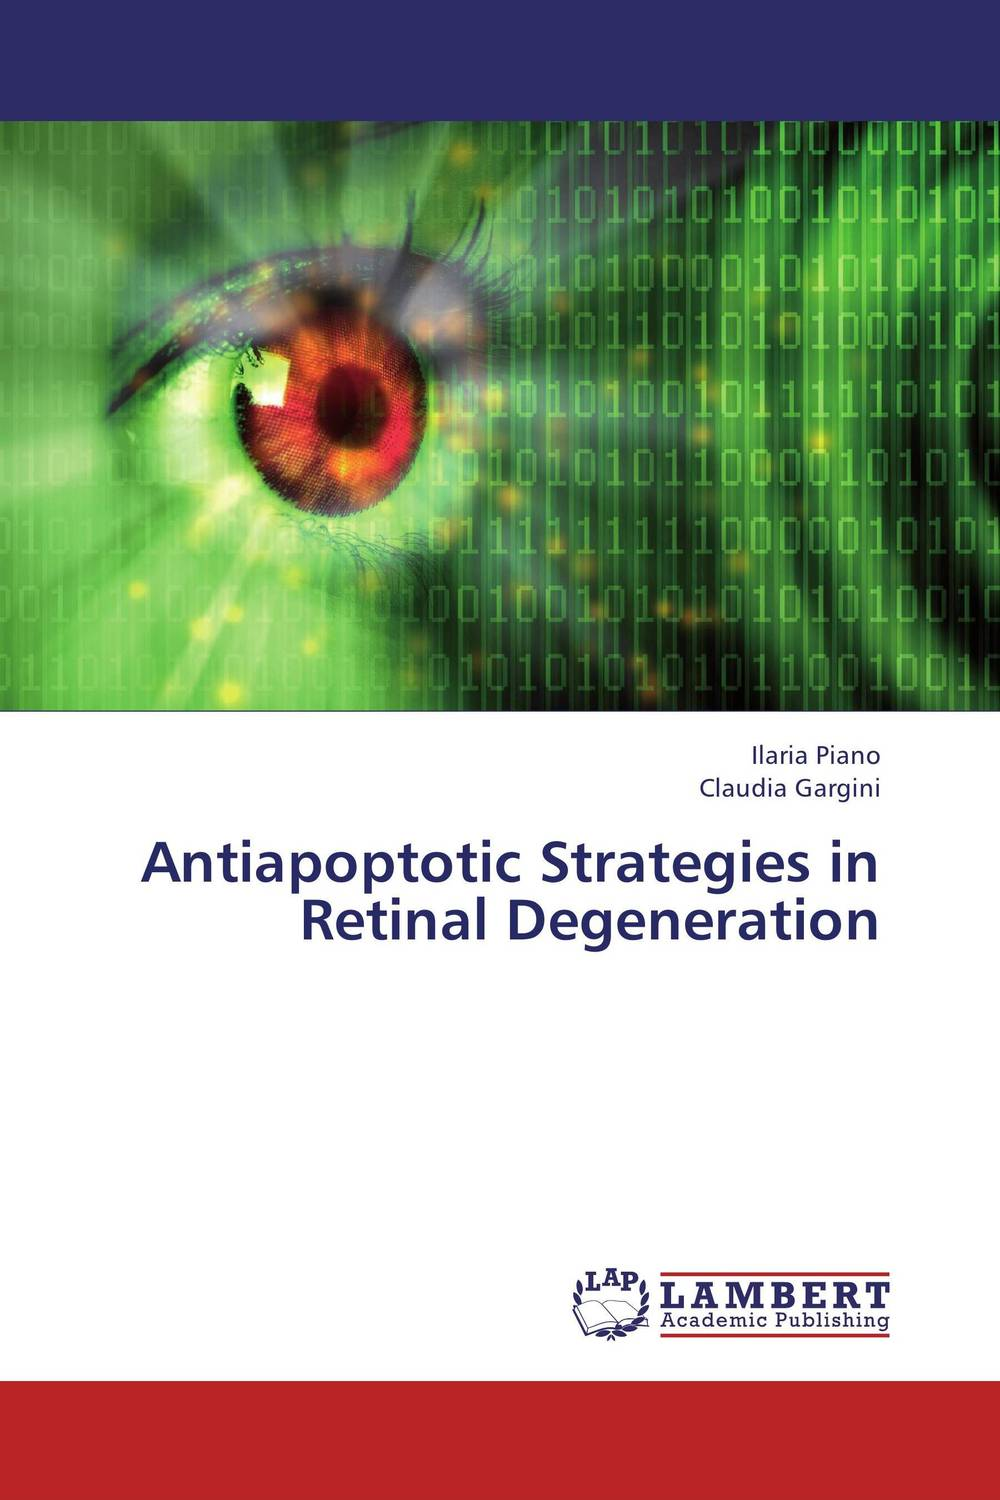 Antiapoptotic Strategies in Retinal Degeneration ilaria piano and claudia gargini antiapoptotic strategies in retinal degeneration